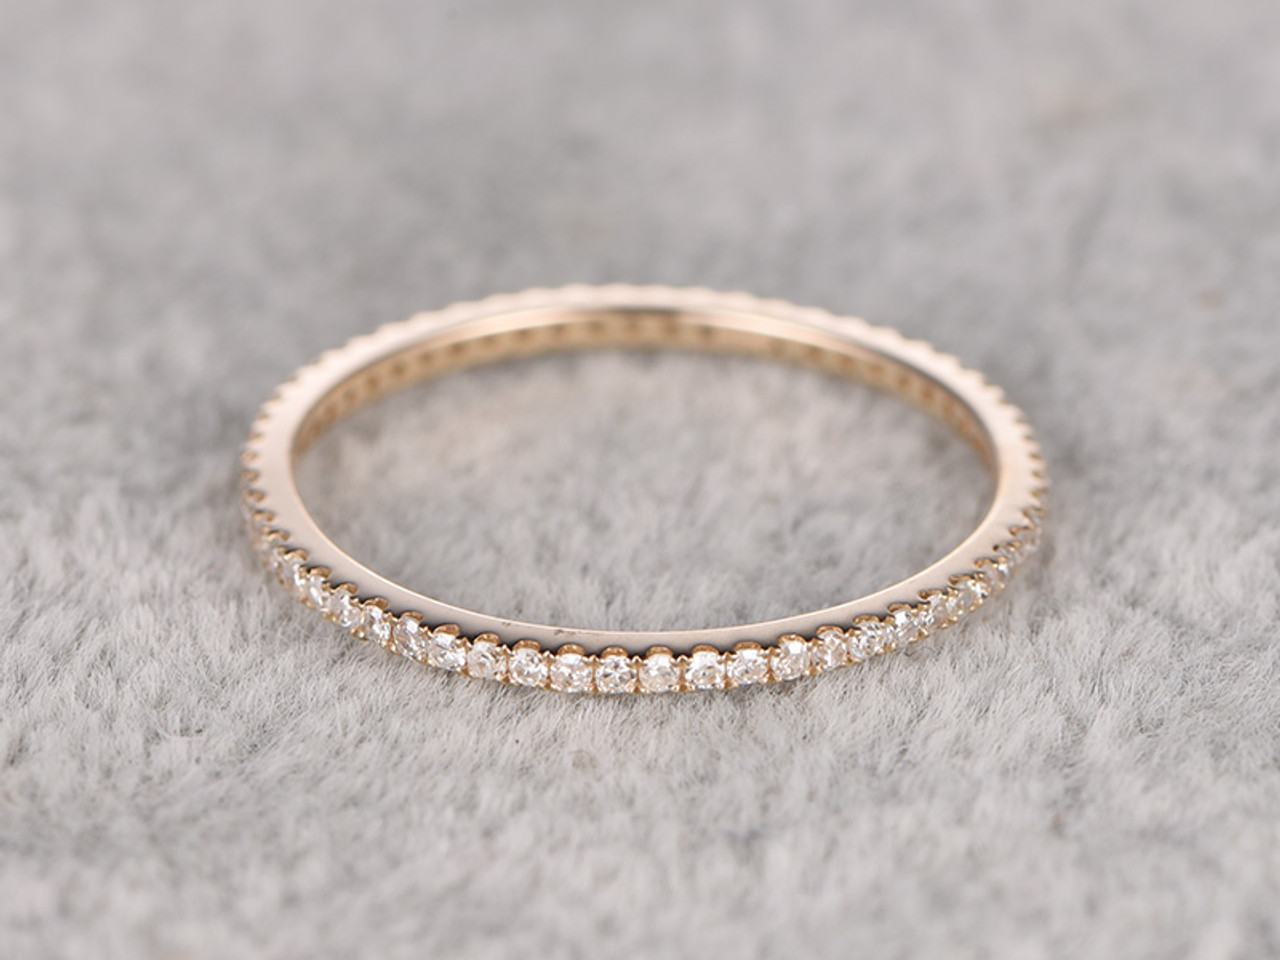 Diamond Wedding Rings For Her 14k Yellow Gold Thin Pave Full